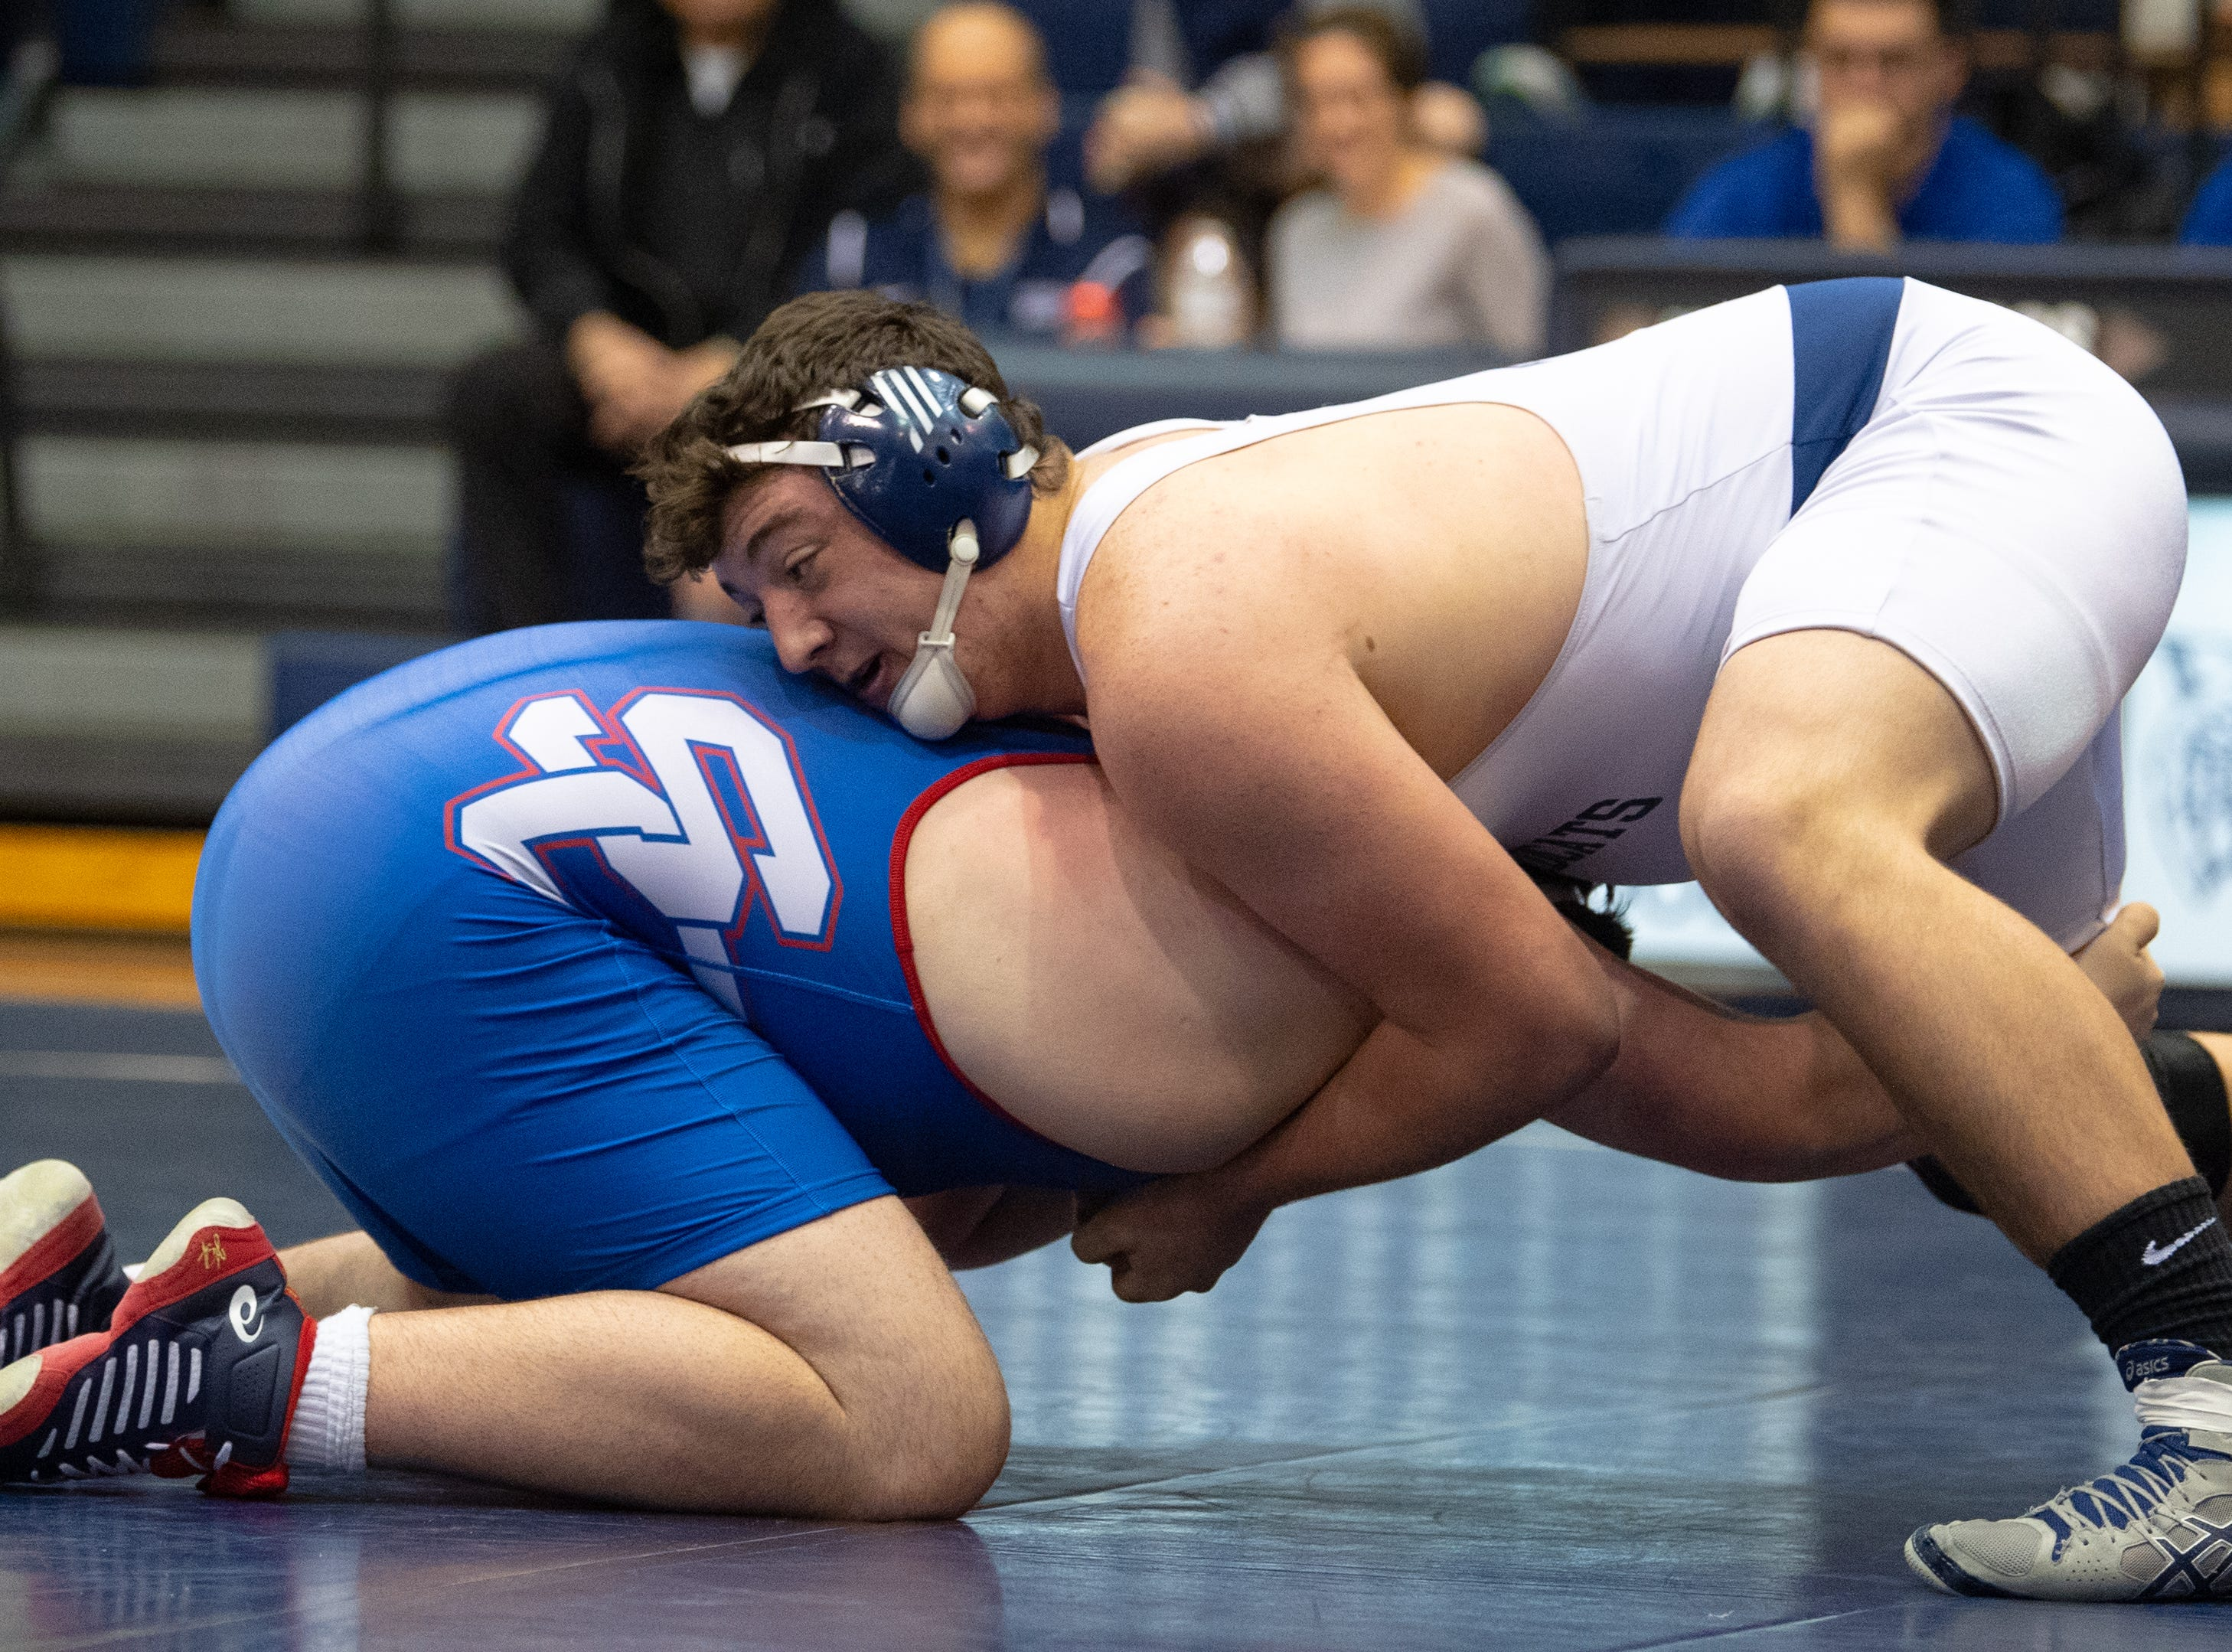 Raymond Christas of Dallastown has the upper hand during the wrestling dual meet between Dallastown and Spring Grove, January 17, 2019. The Wildcats defeated the Rockets 46-24.